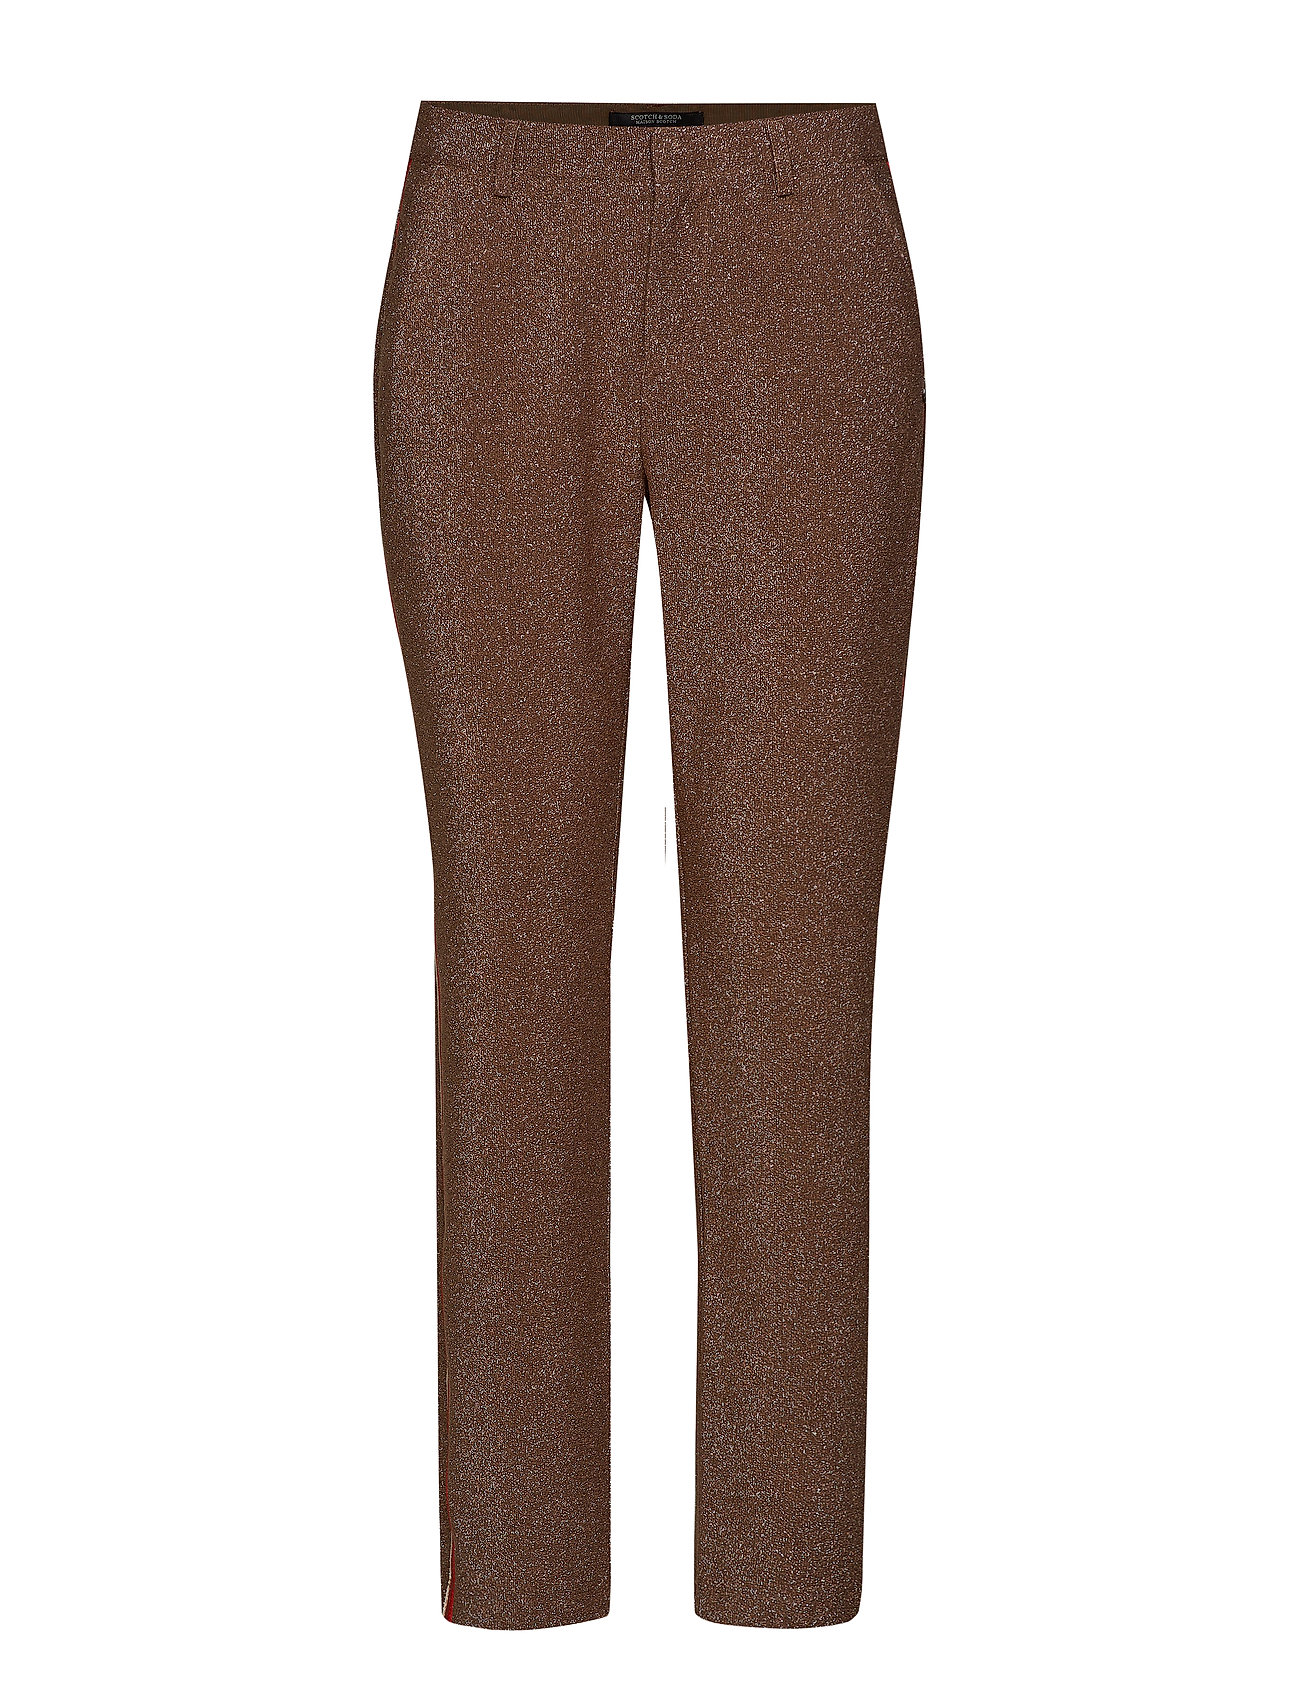 Scotch & Soda Lurex tailored pants with tape detail - COMBO A